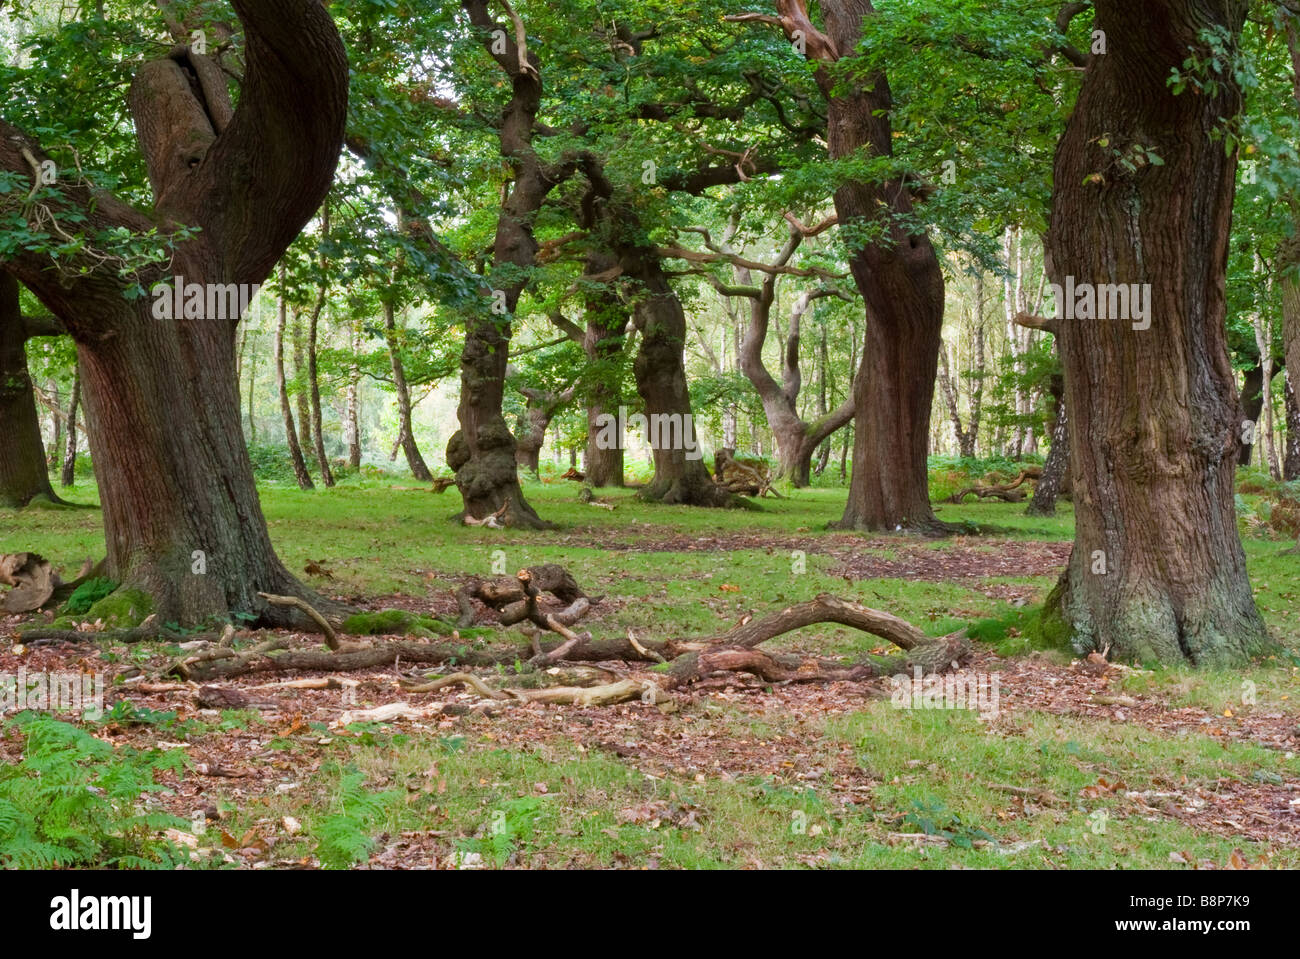 'ancient woodland' - Stock Image